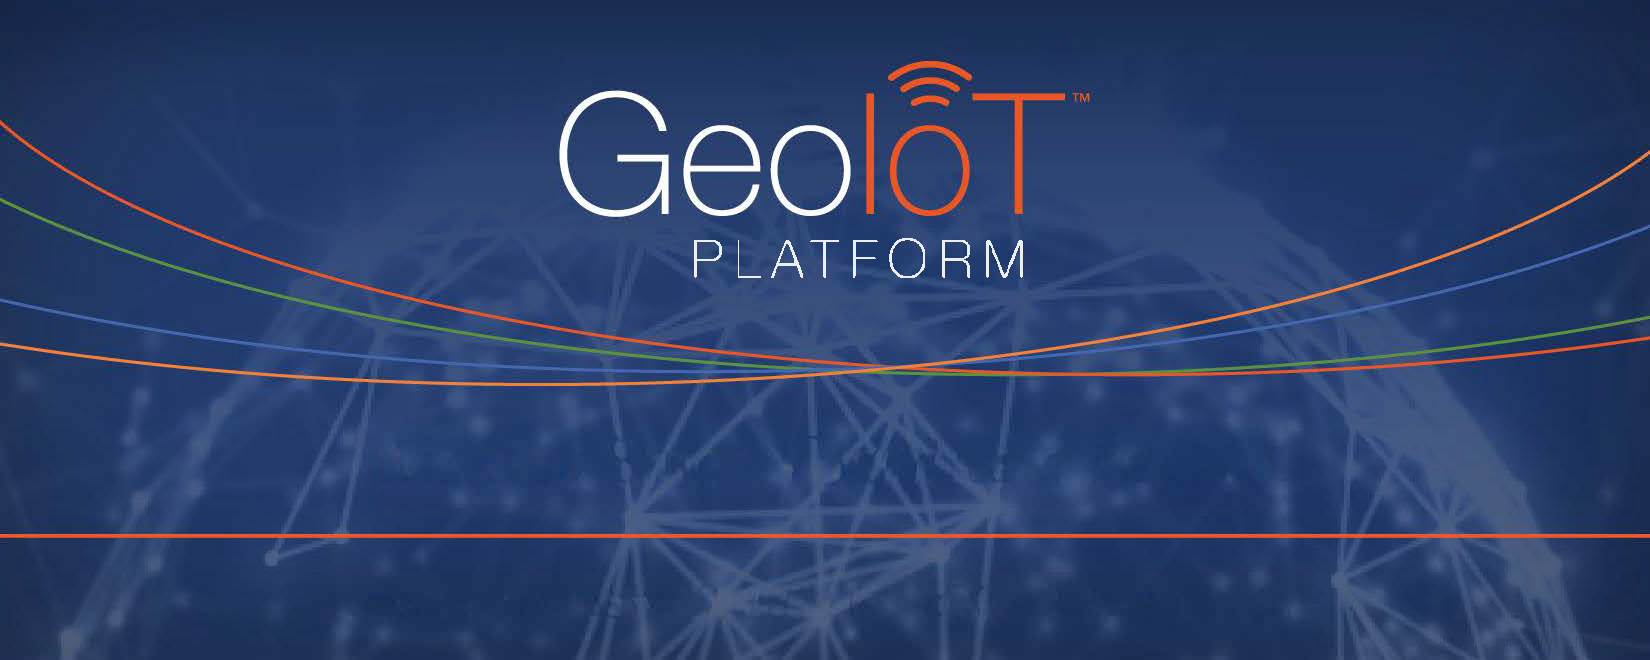 geoiot_hubspot_header_1650x660 asset tracking video page.png